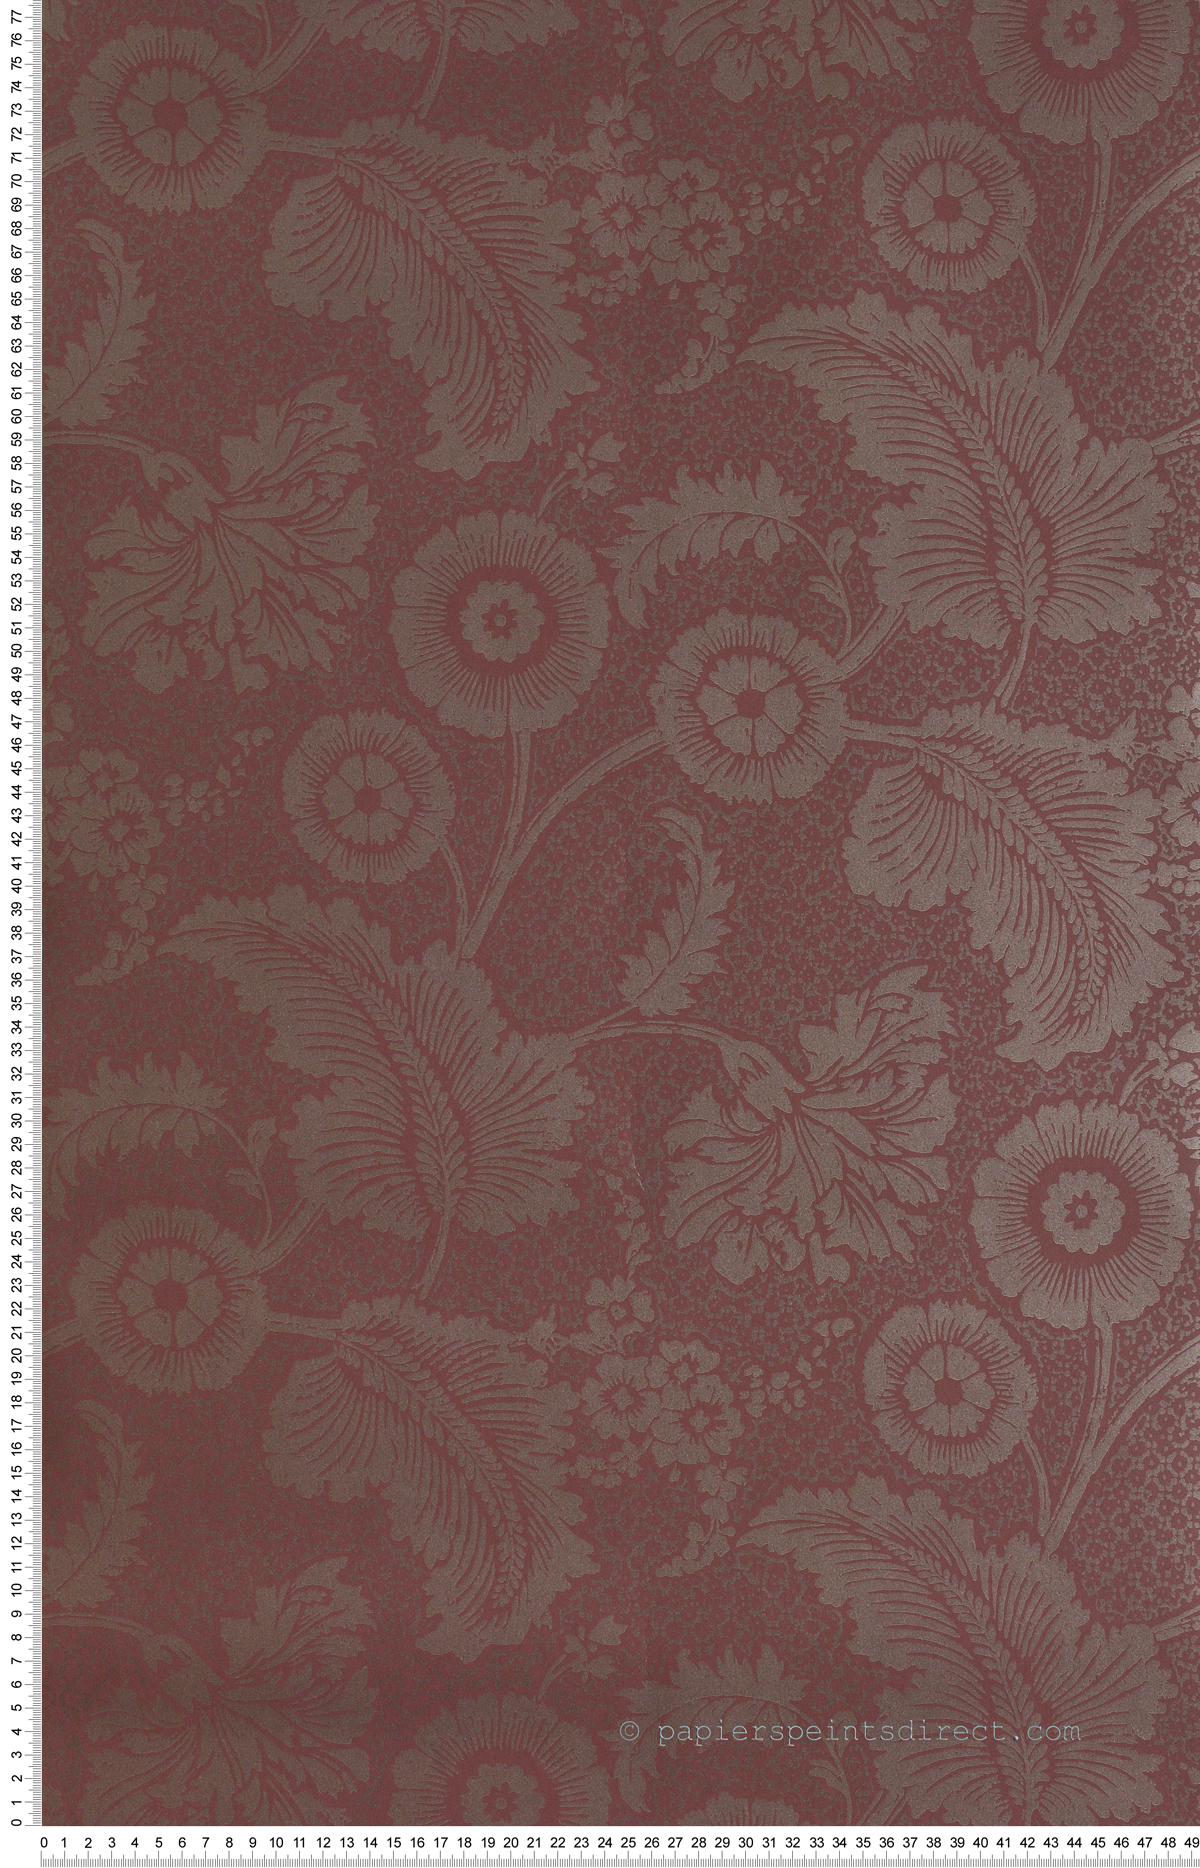 Piccadilly Miroir - papier peint Revolution Papers de Little Greene